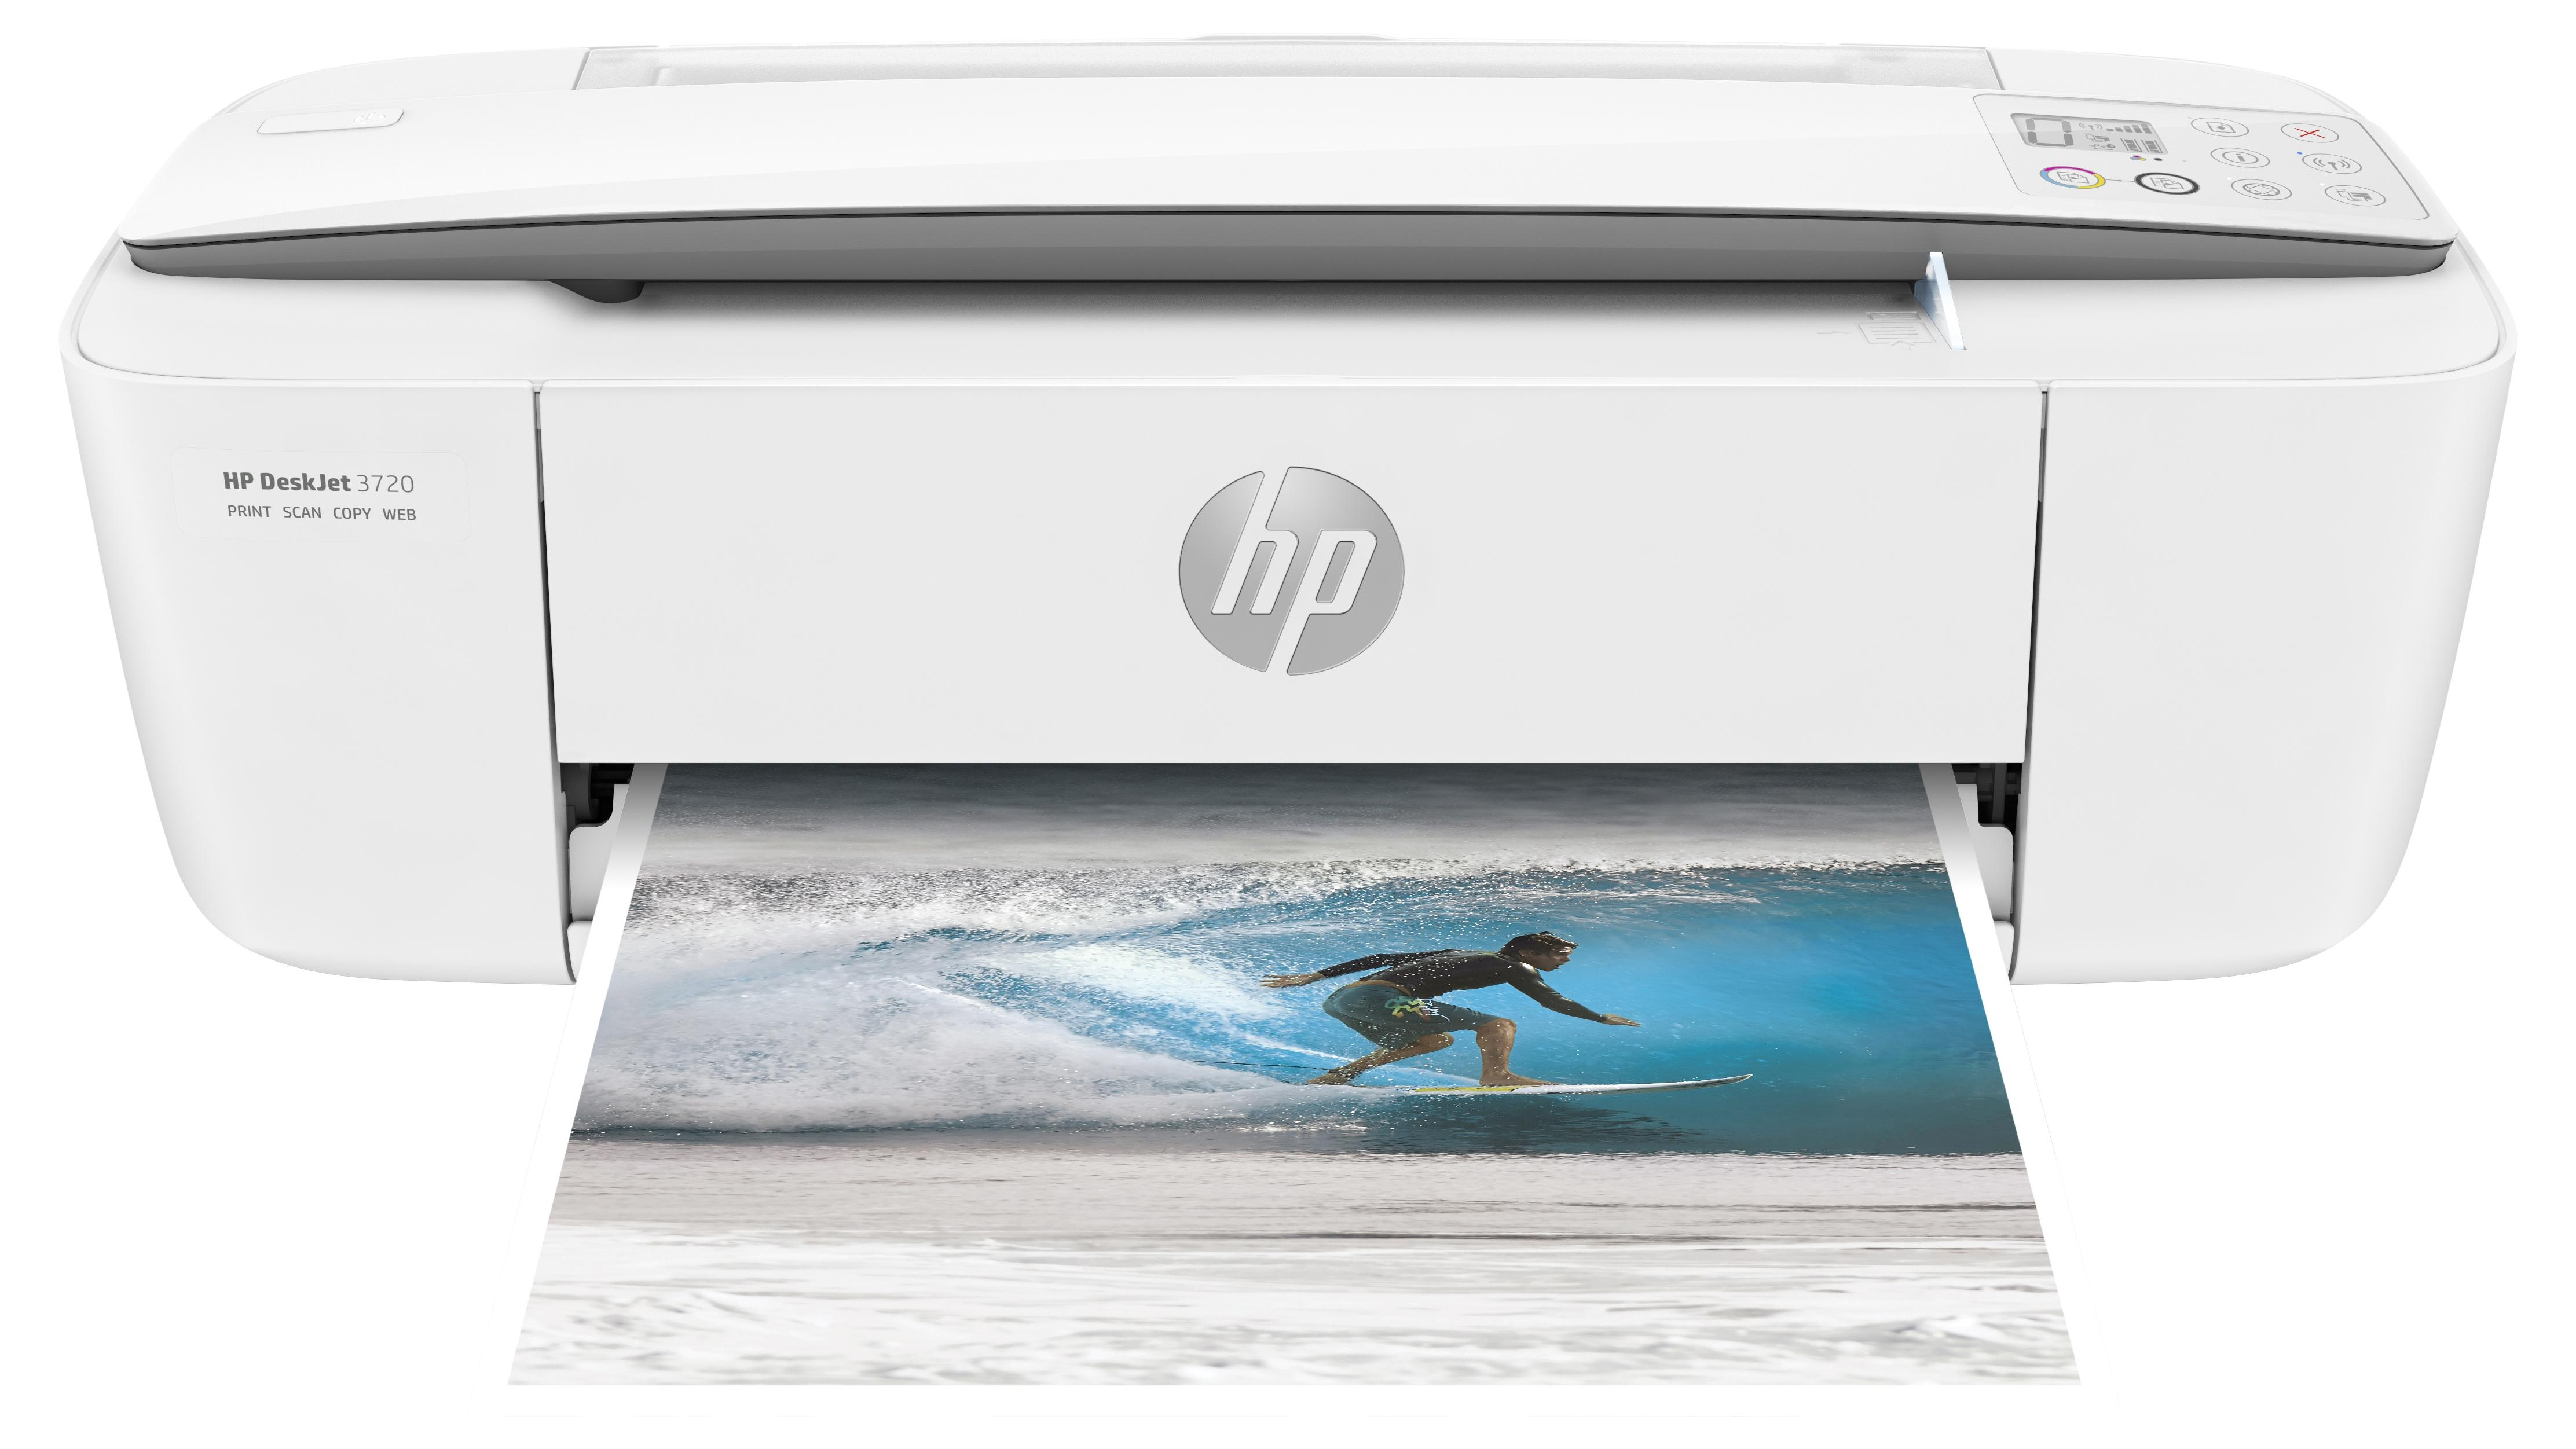 HP Deskjet 3720 AiO printer white